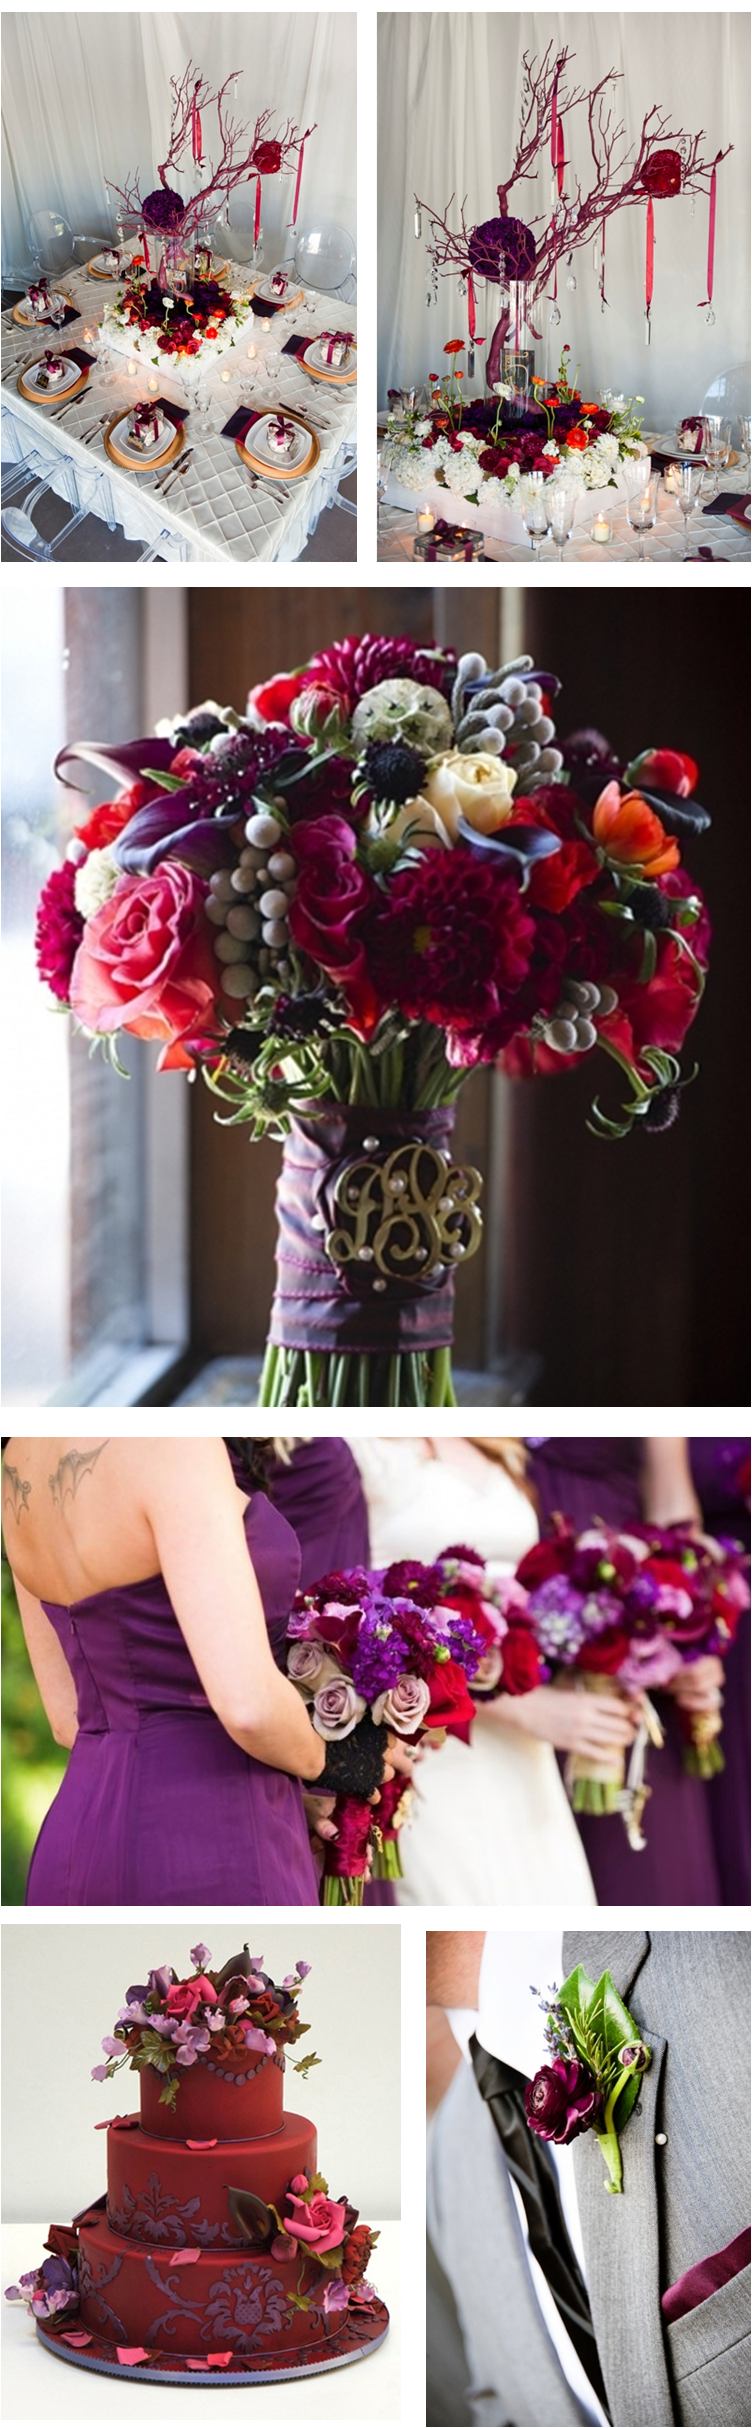 Wedding Bells Decorations Maroon Accents In Wedding Decorations #maroon #wedding  Shades Of